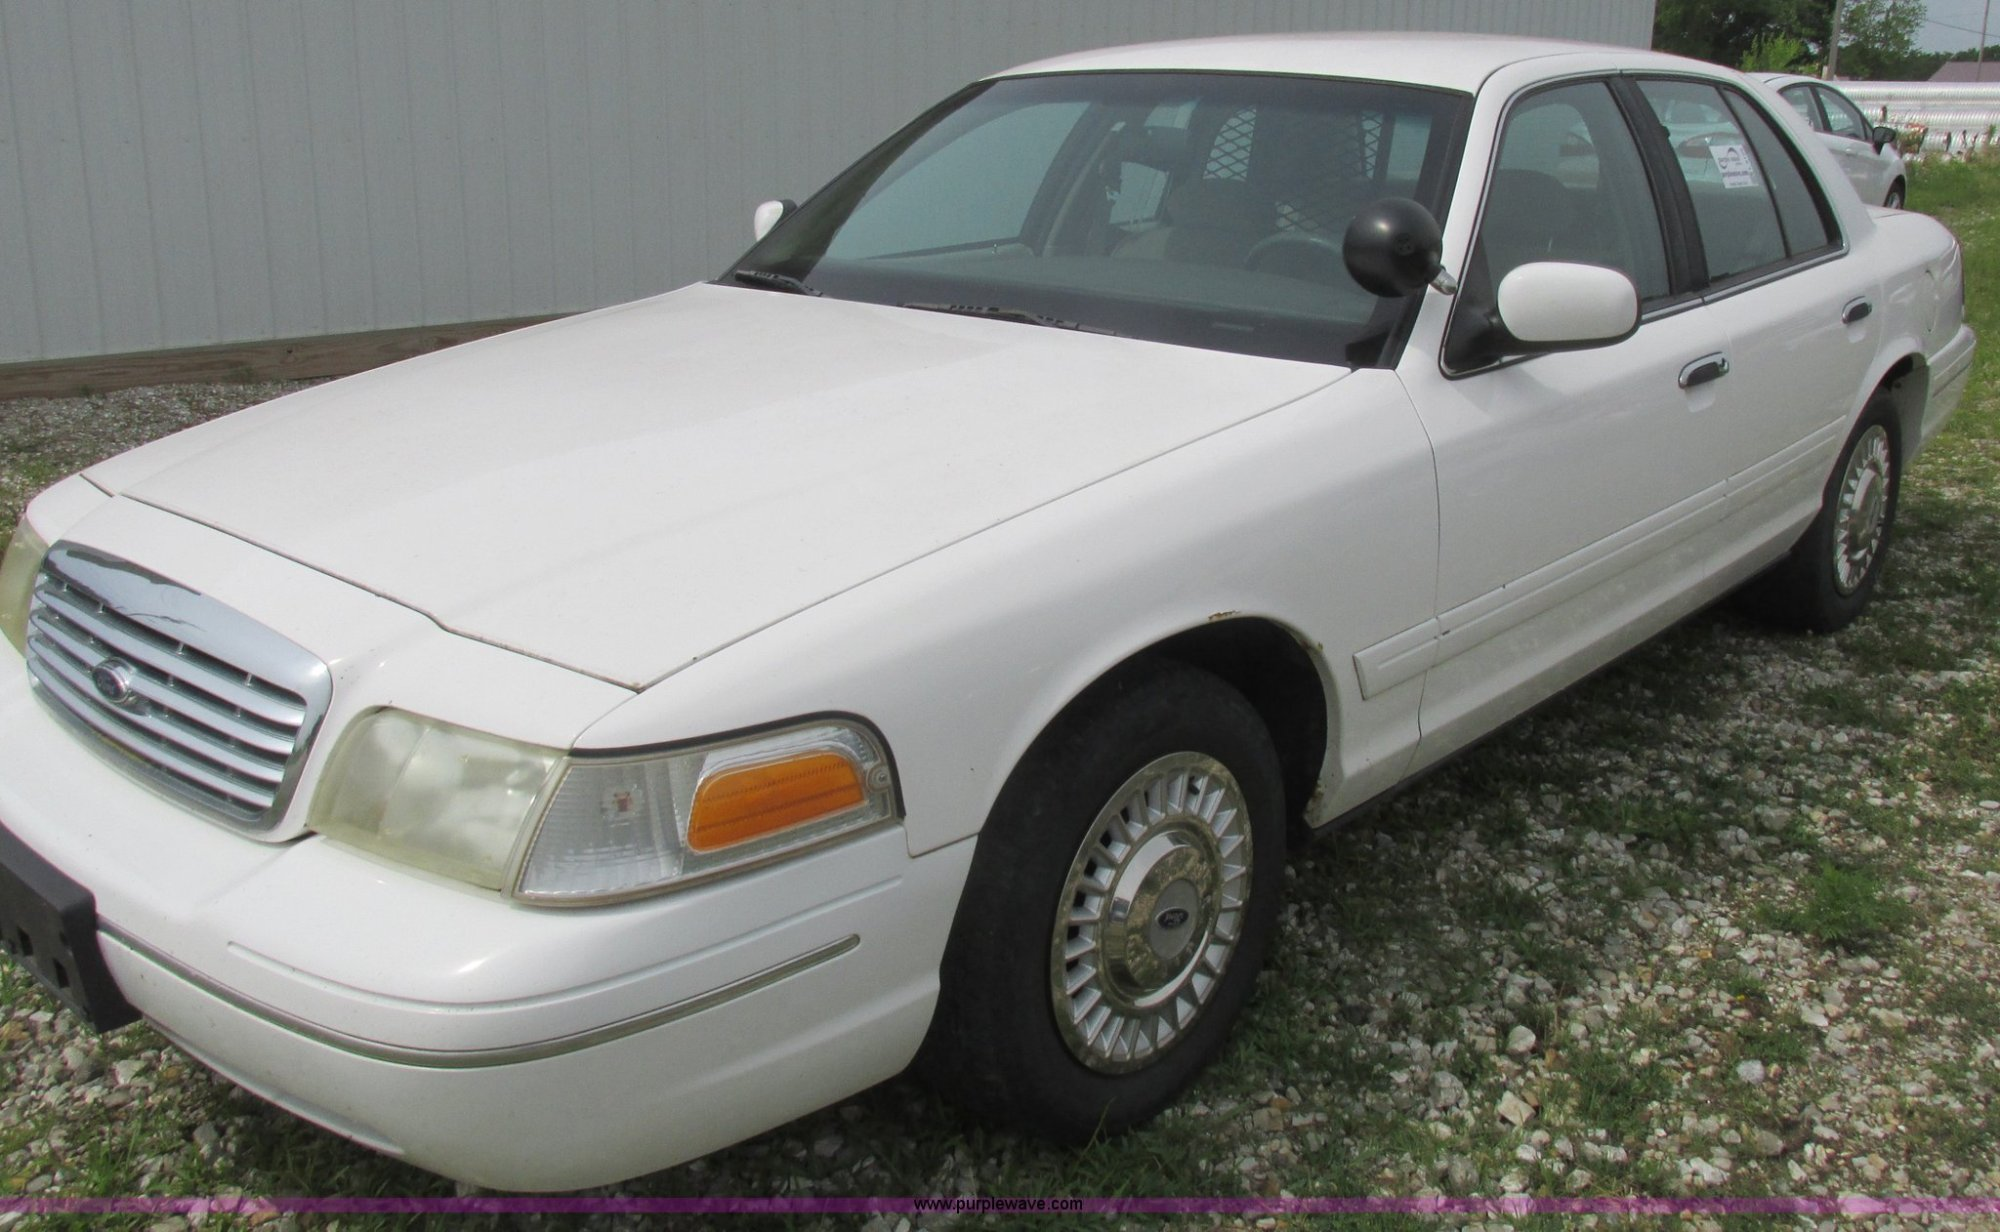 hight resolution of l6199 image for item l6199 1999 ford crown victoria police interceptor